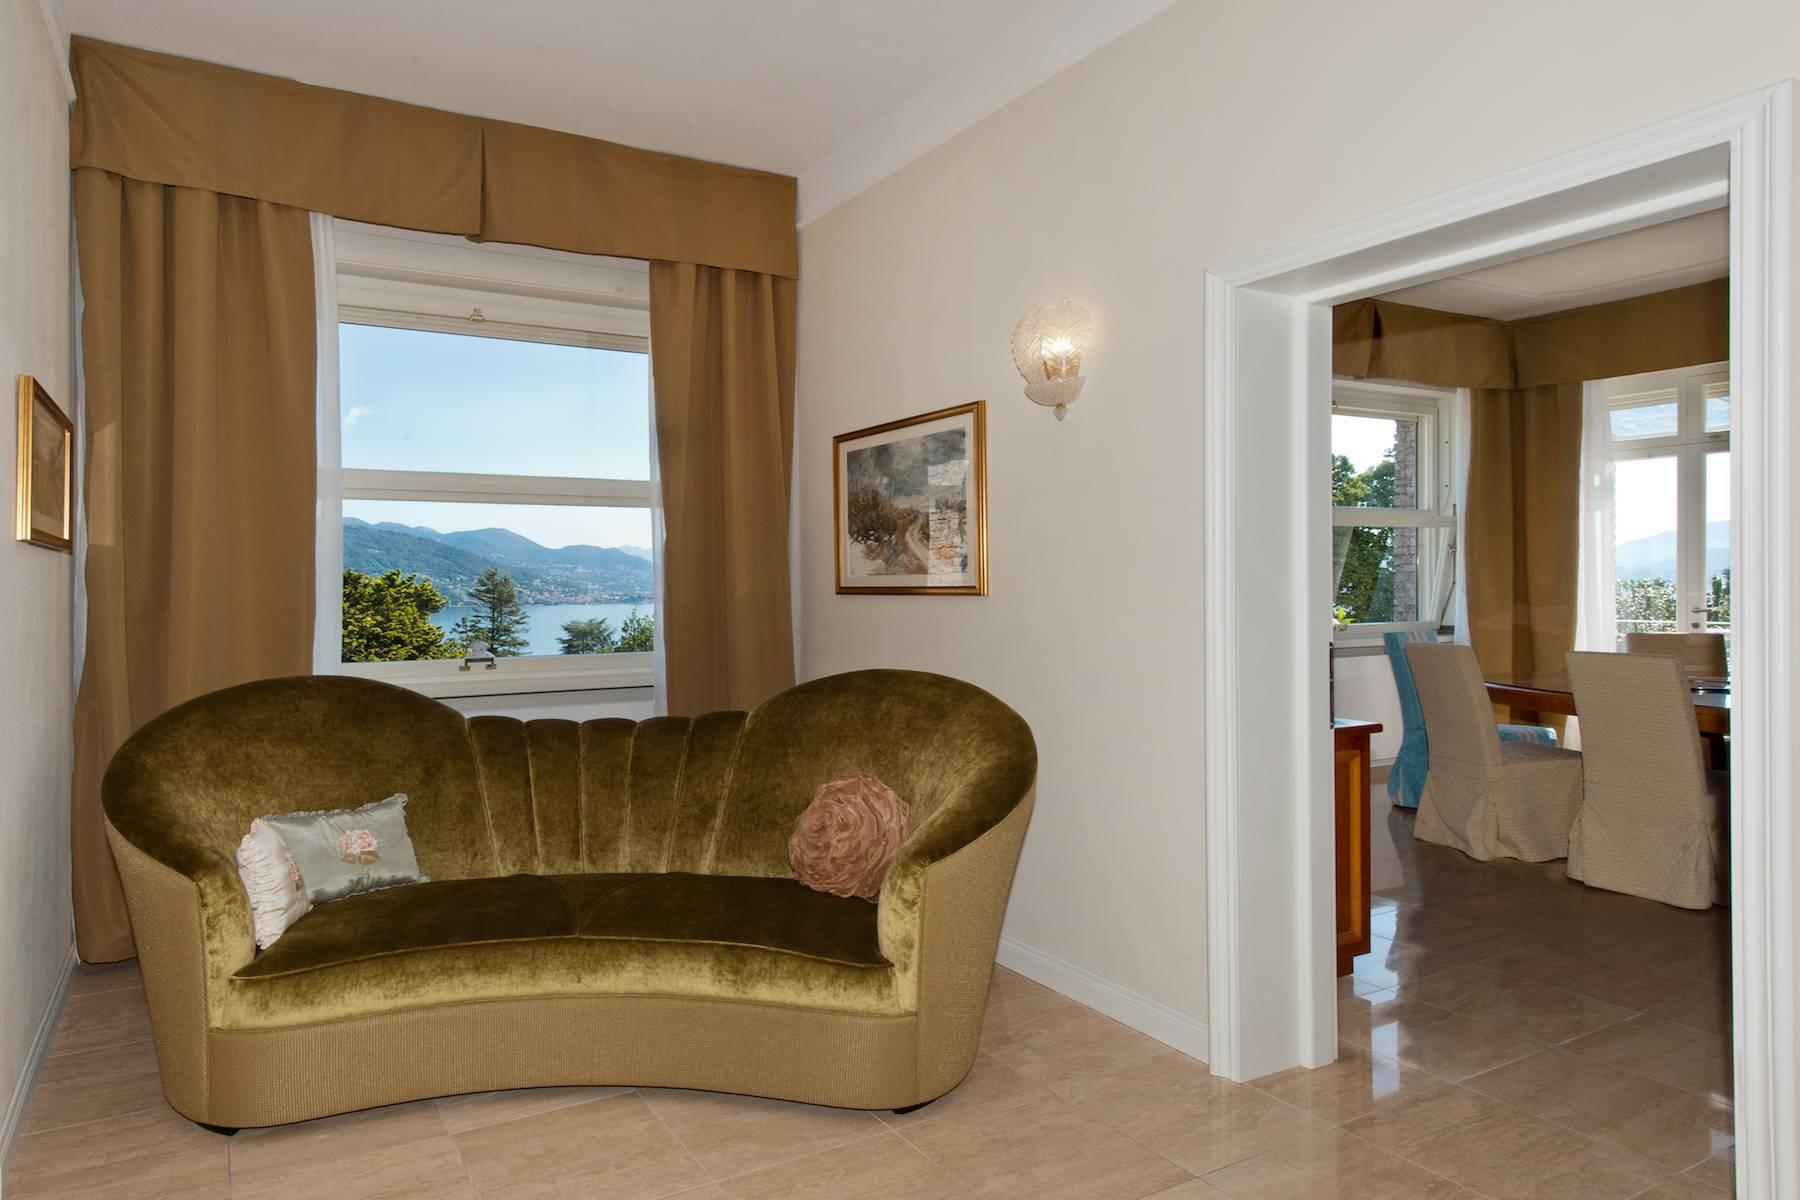 Enchanting Villa with breathtaking view on Lake Maggiore - 9